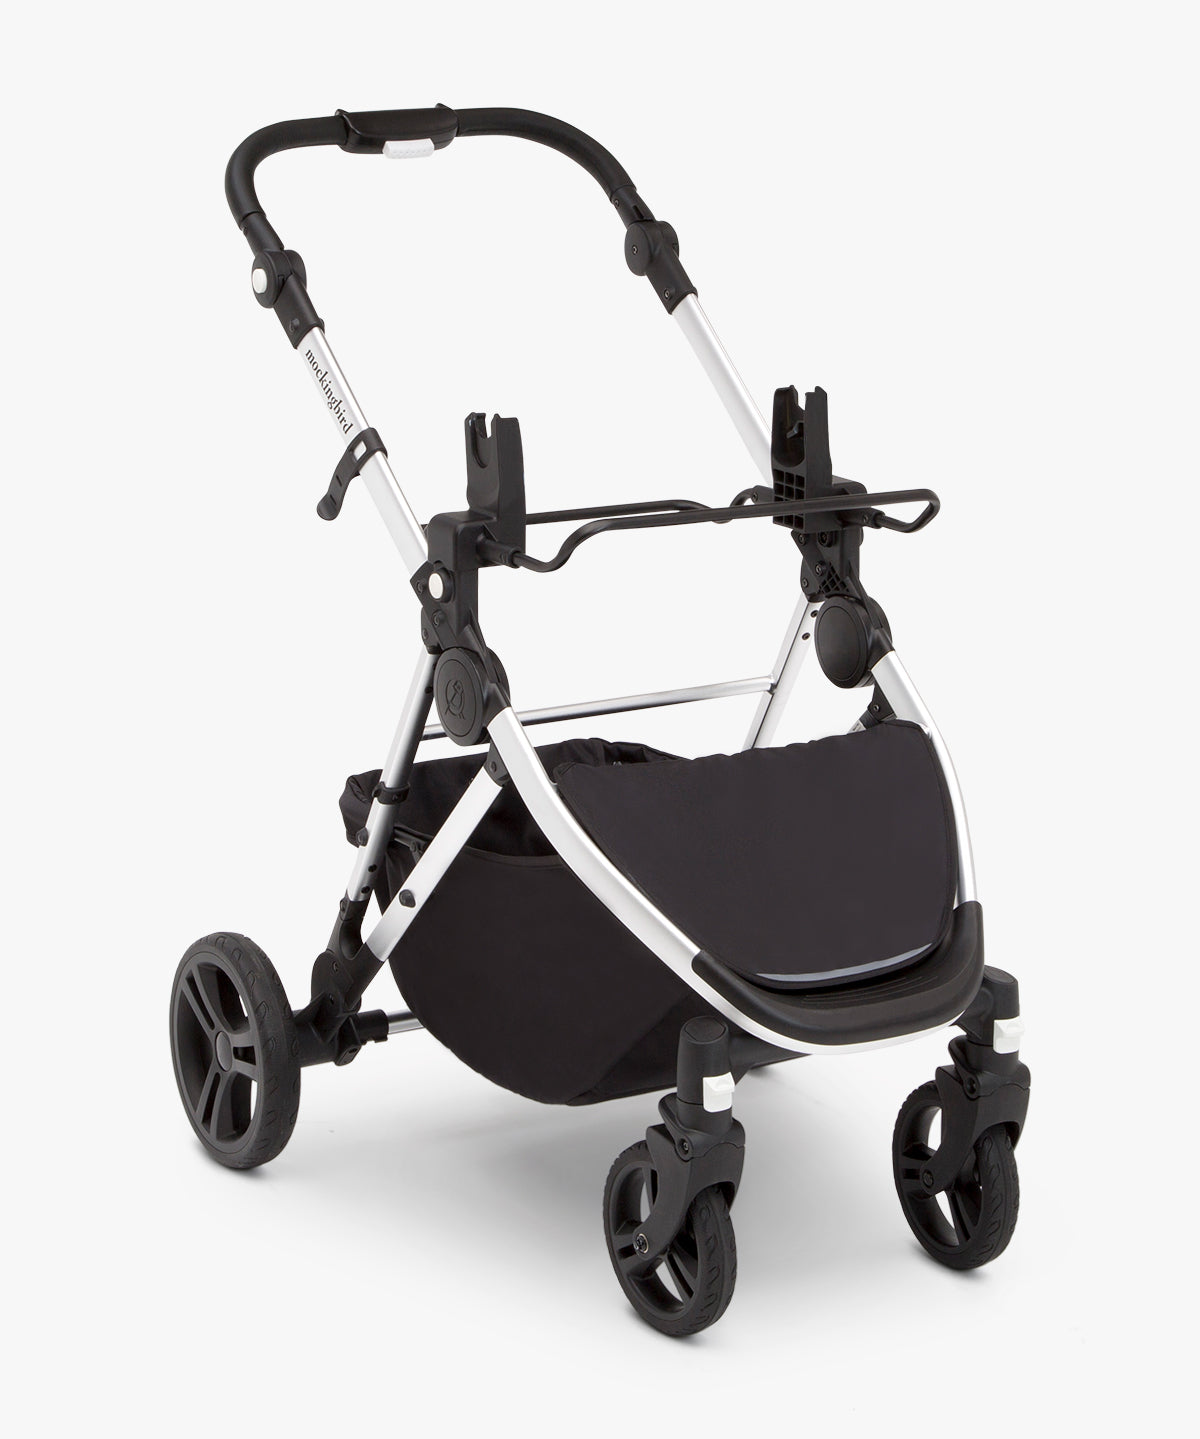 Strollers And Car Seats - Stroller